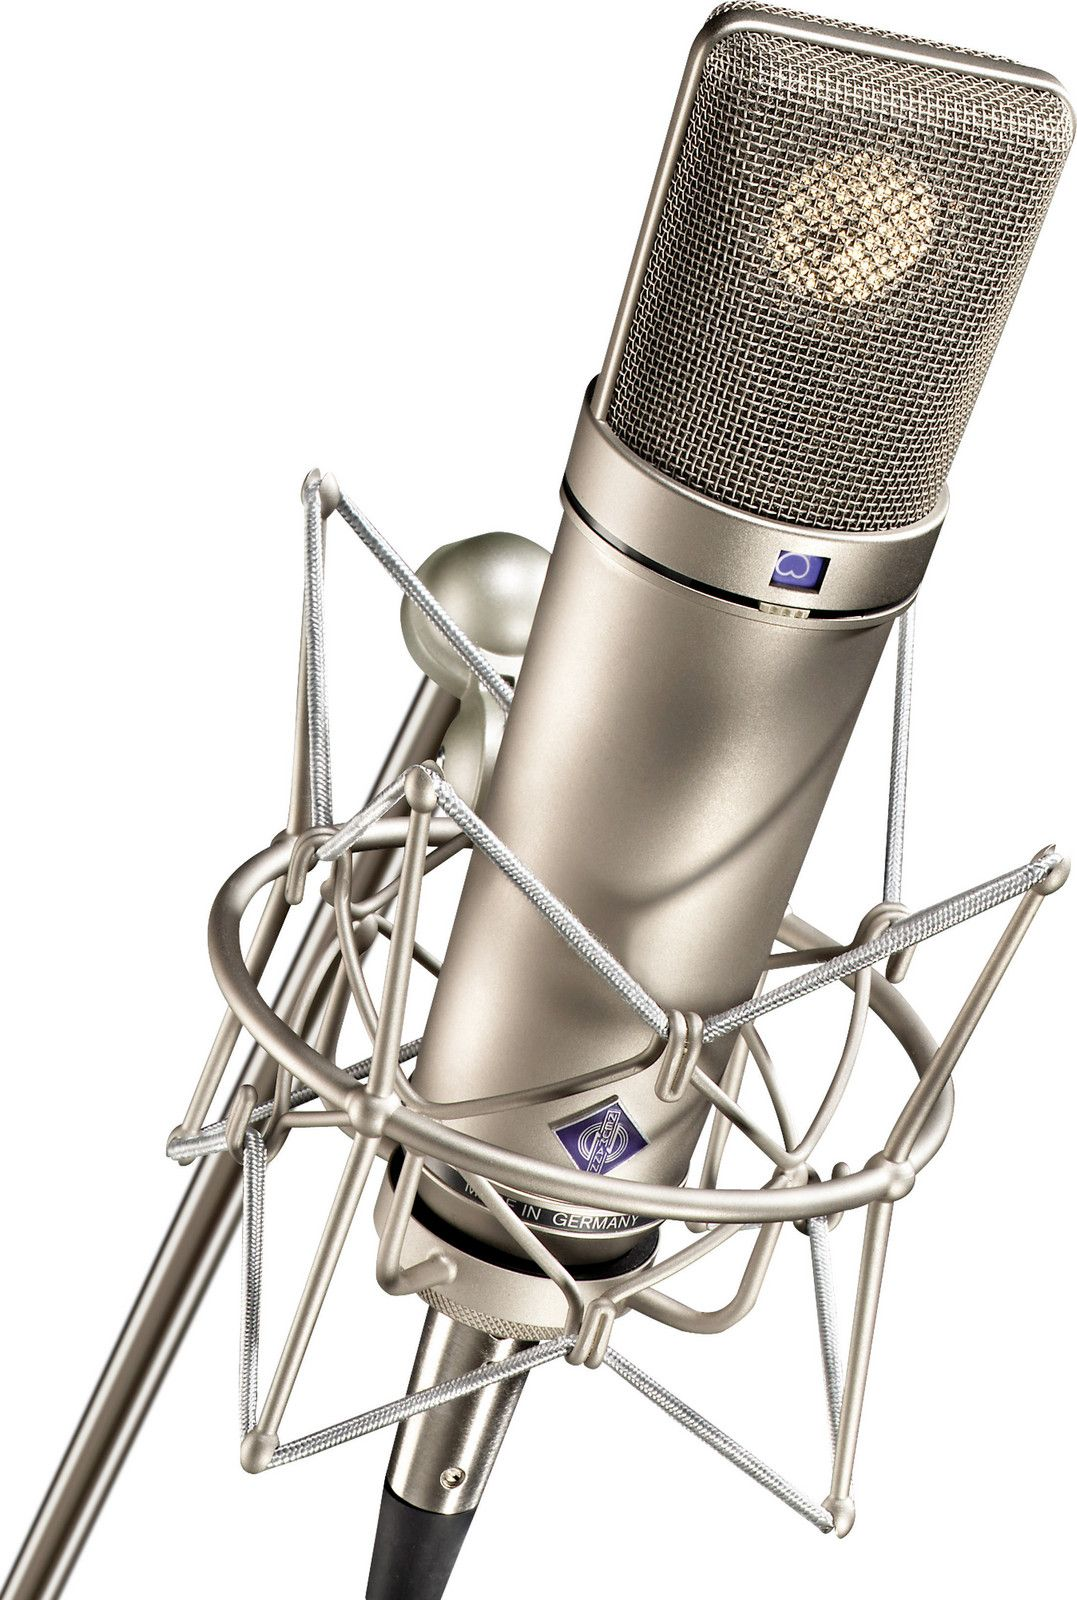 Neumann U 87 - Probably the best microphone ever made and a design ...